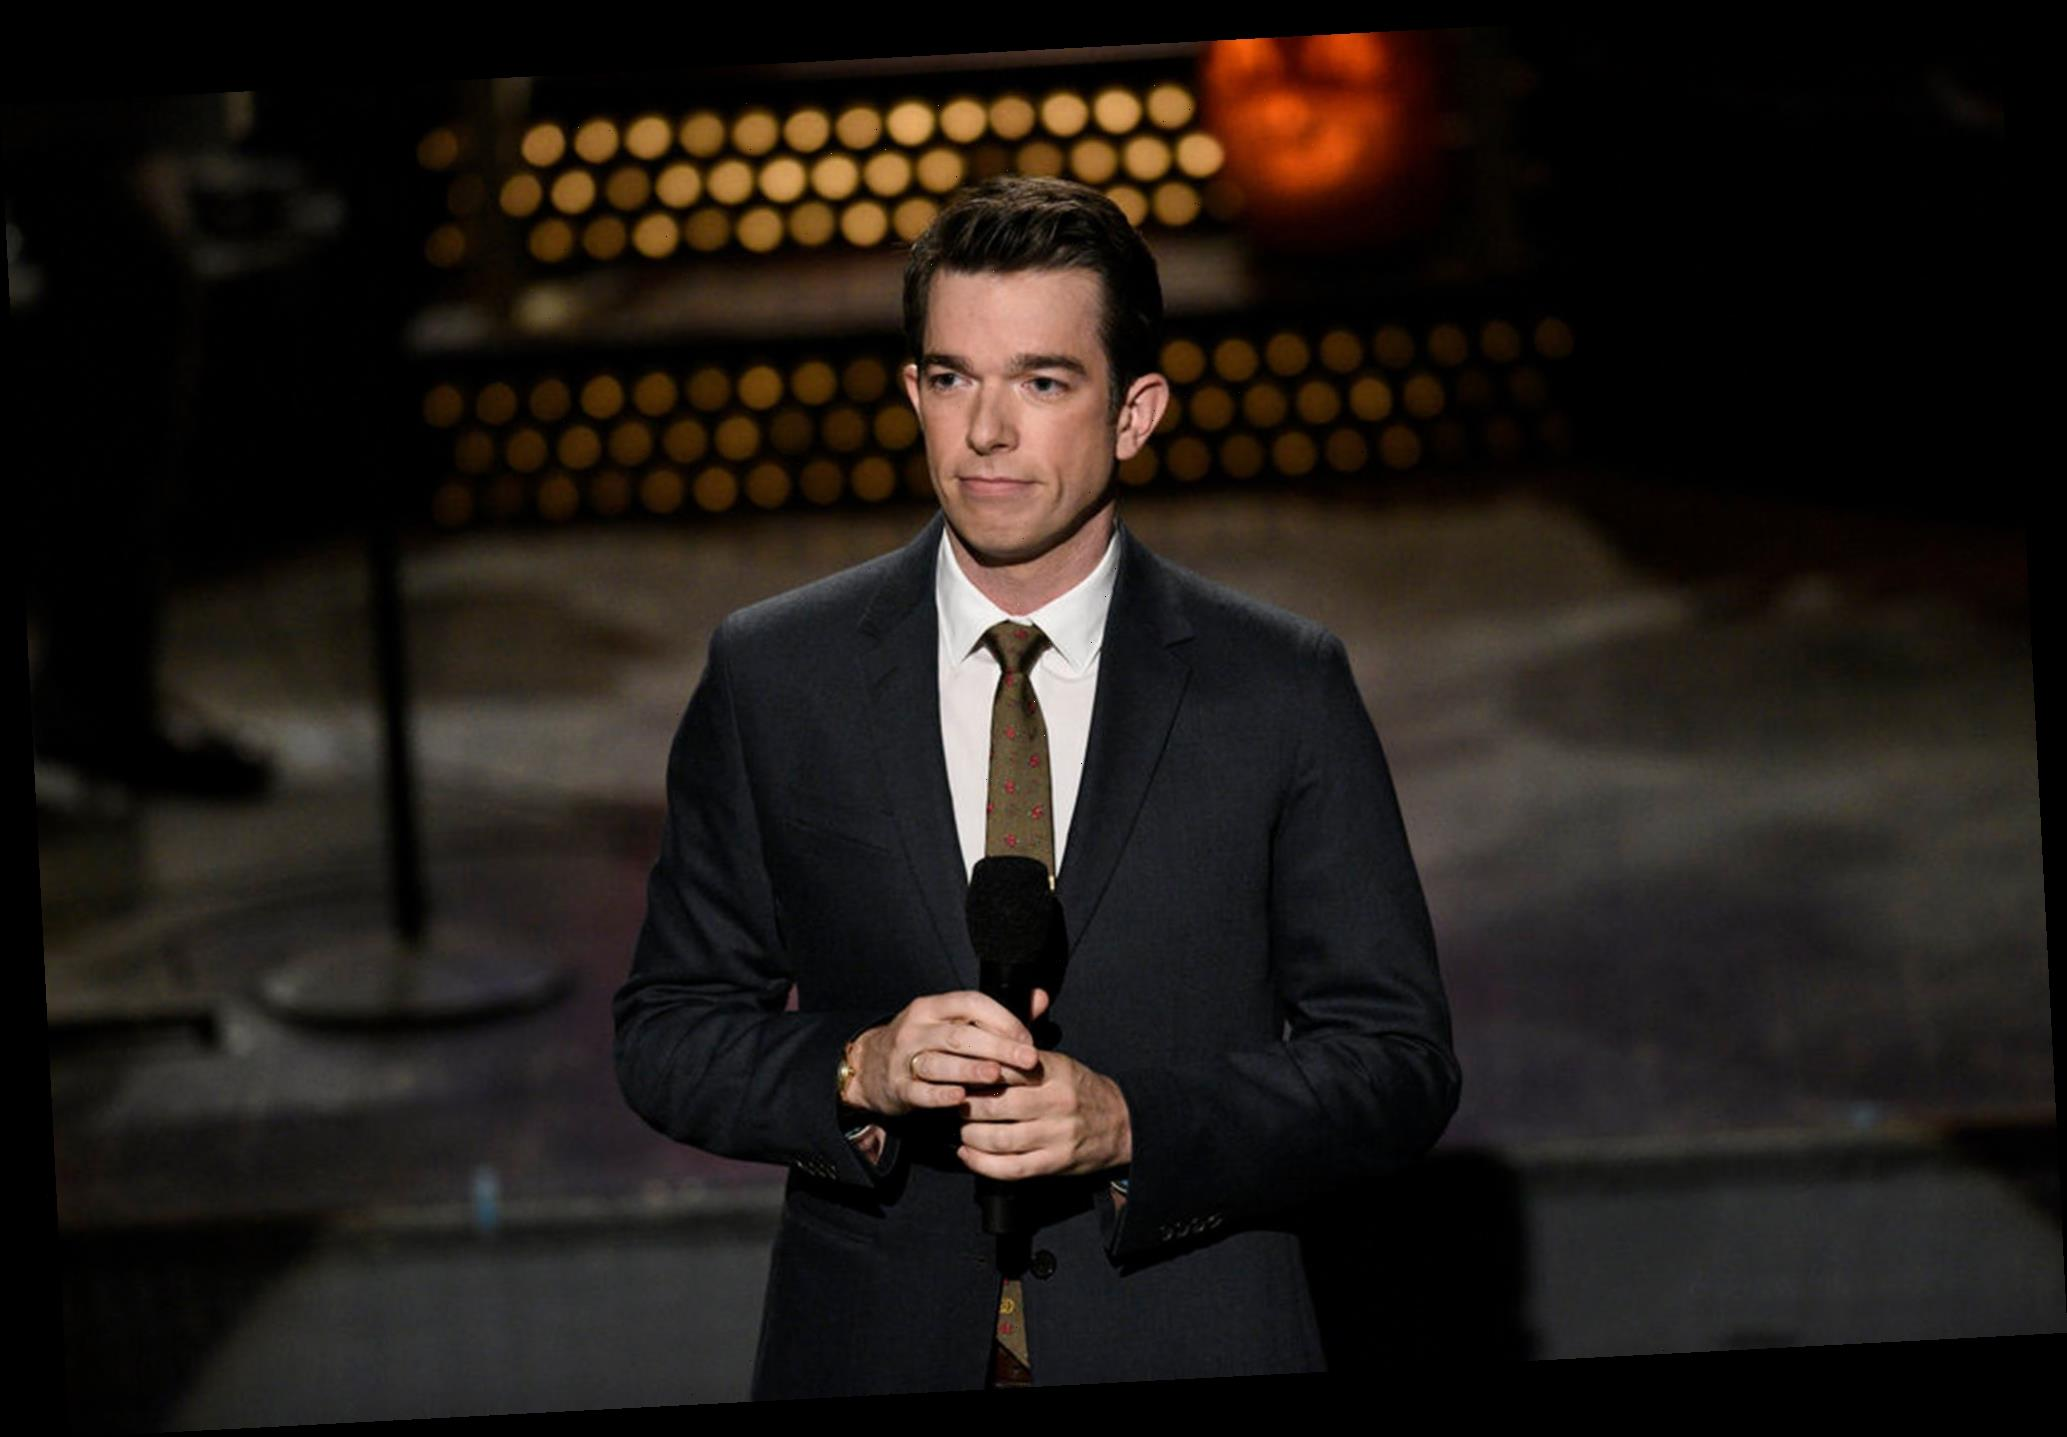 John Mulaney in rehab for cocaine and alcohol abuse